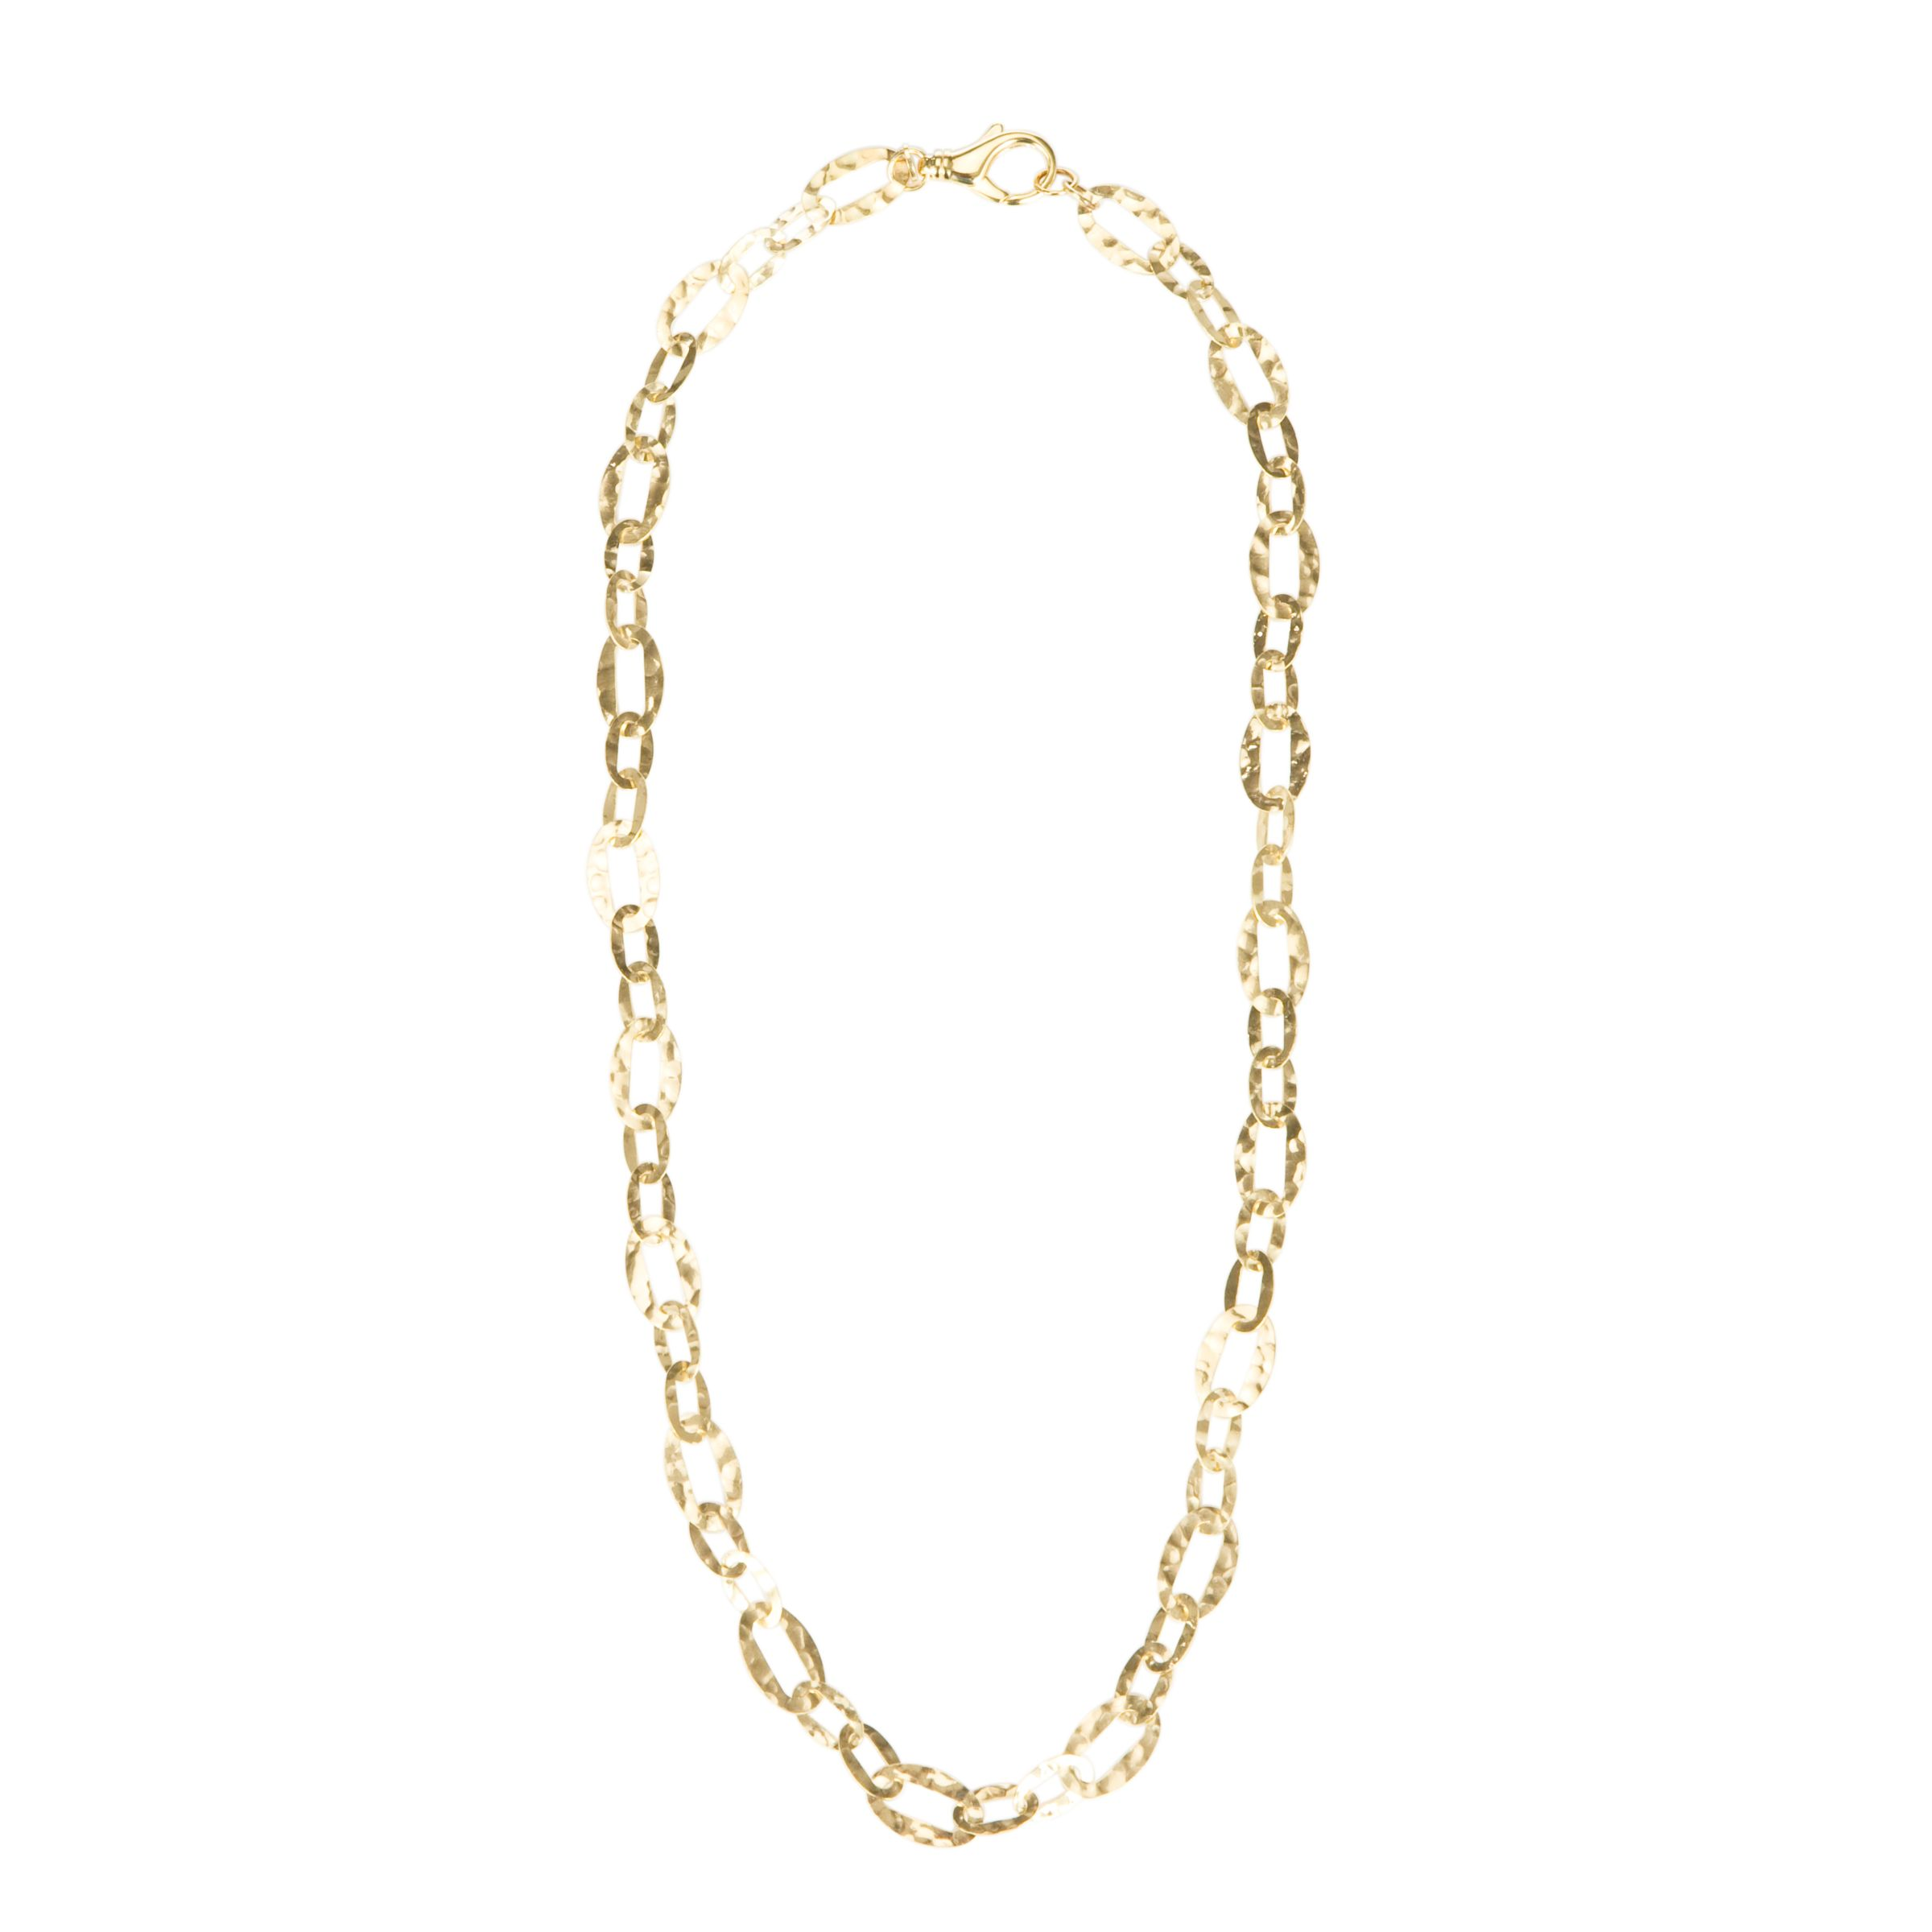 Etrusca 18ct Gold Plated Hammered Round Link Necklace